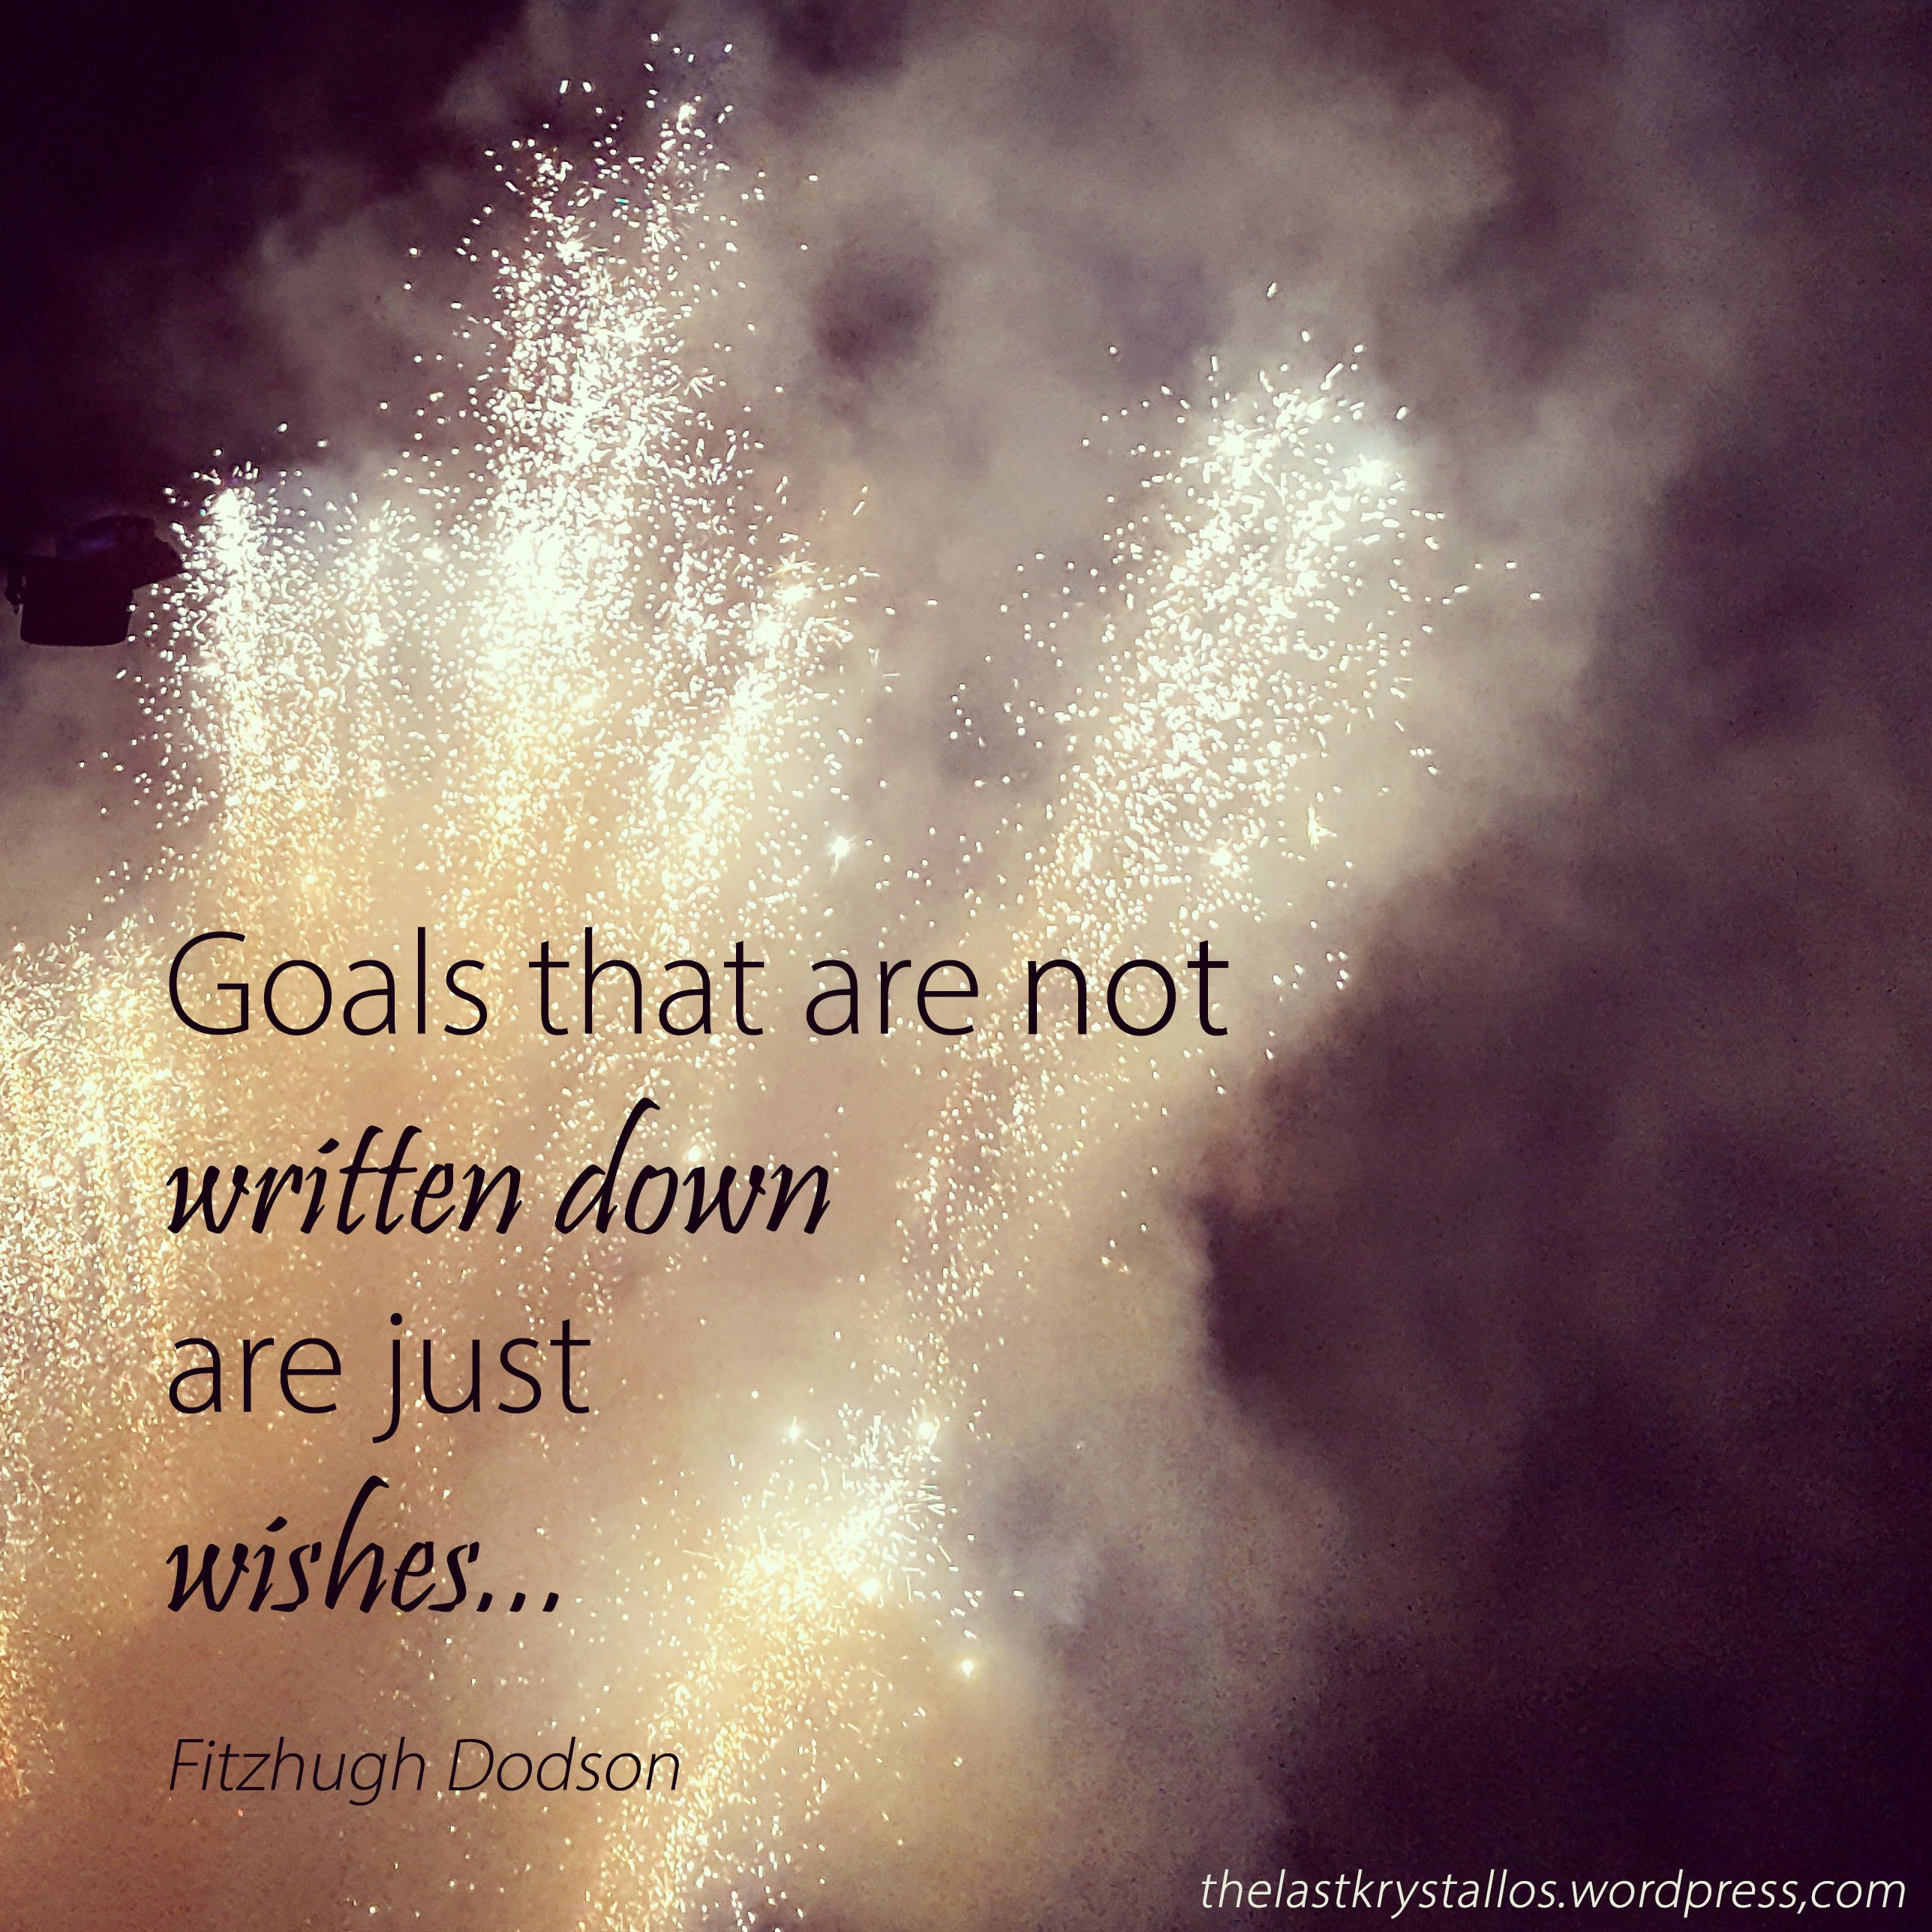 Goals that are not written down are just wishes – Fitzhugh Dodson - The Last Krystallos